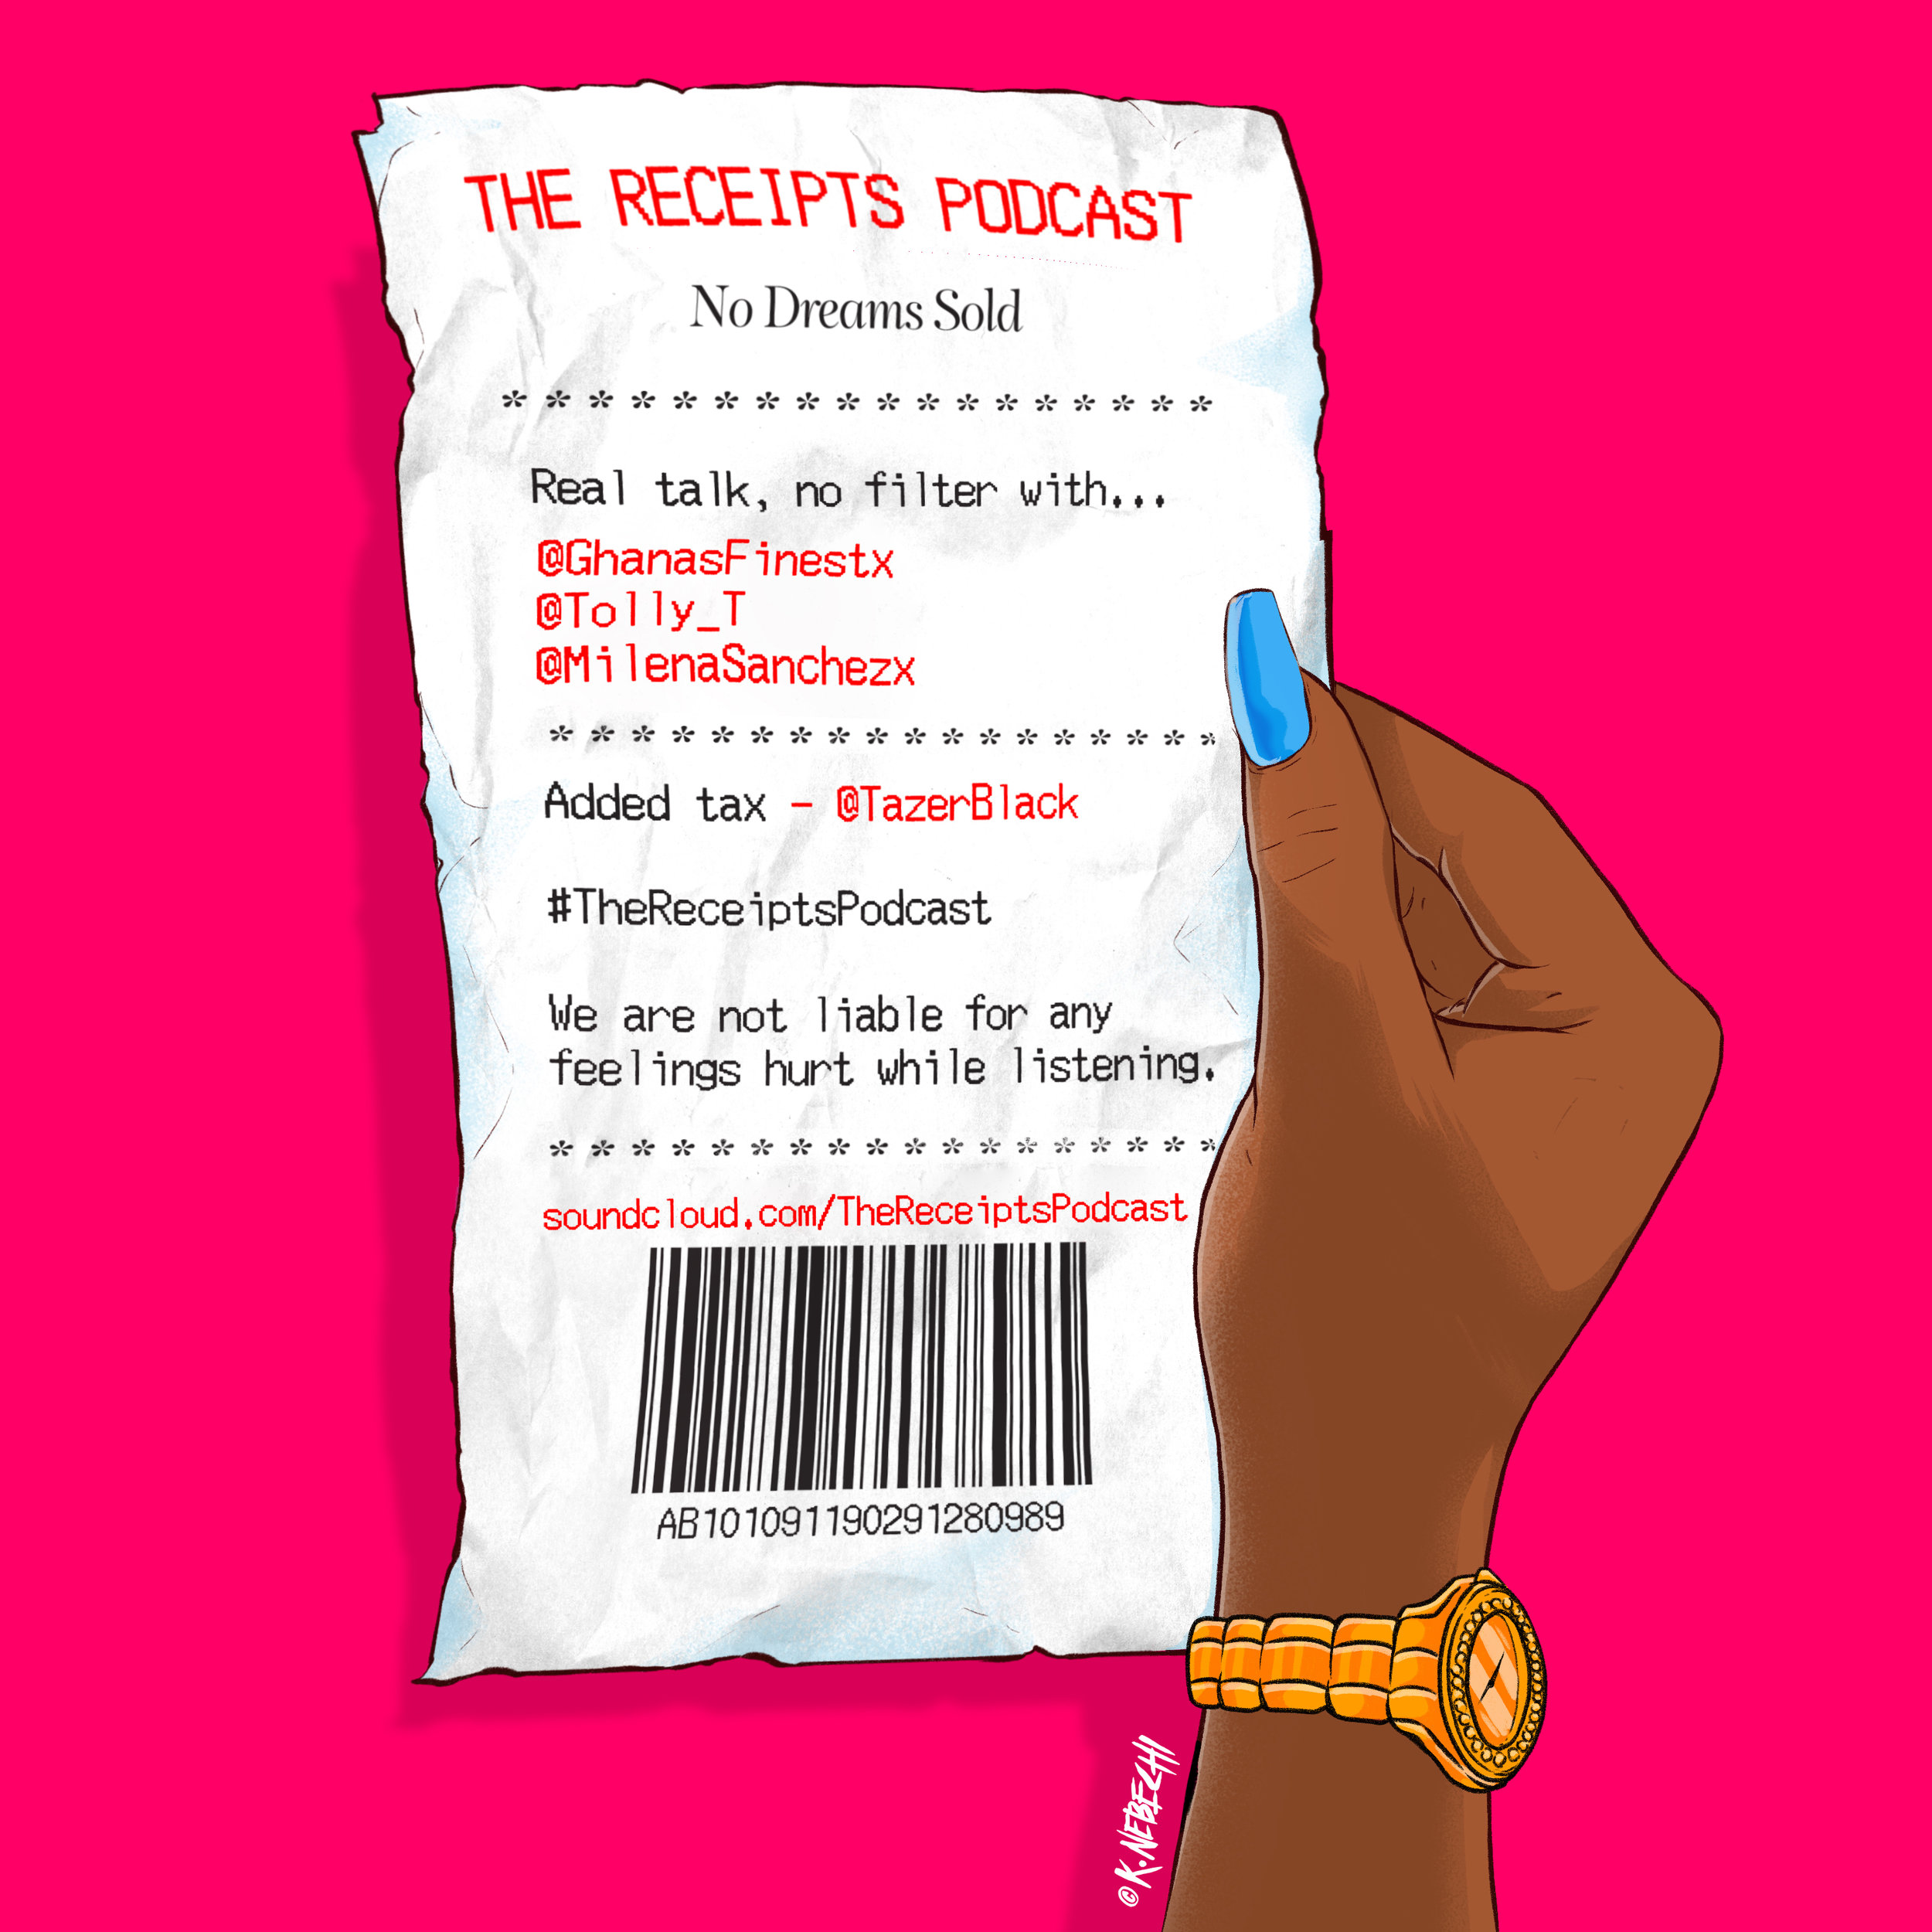 ReceiptsPodcast 1400x1400.jpg